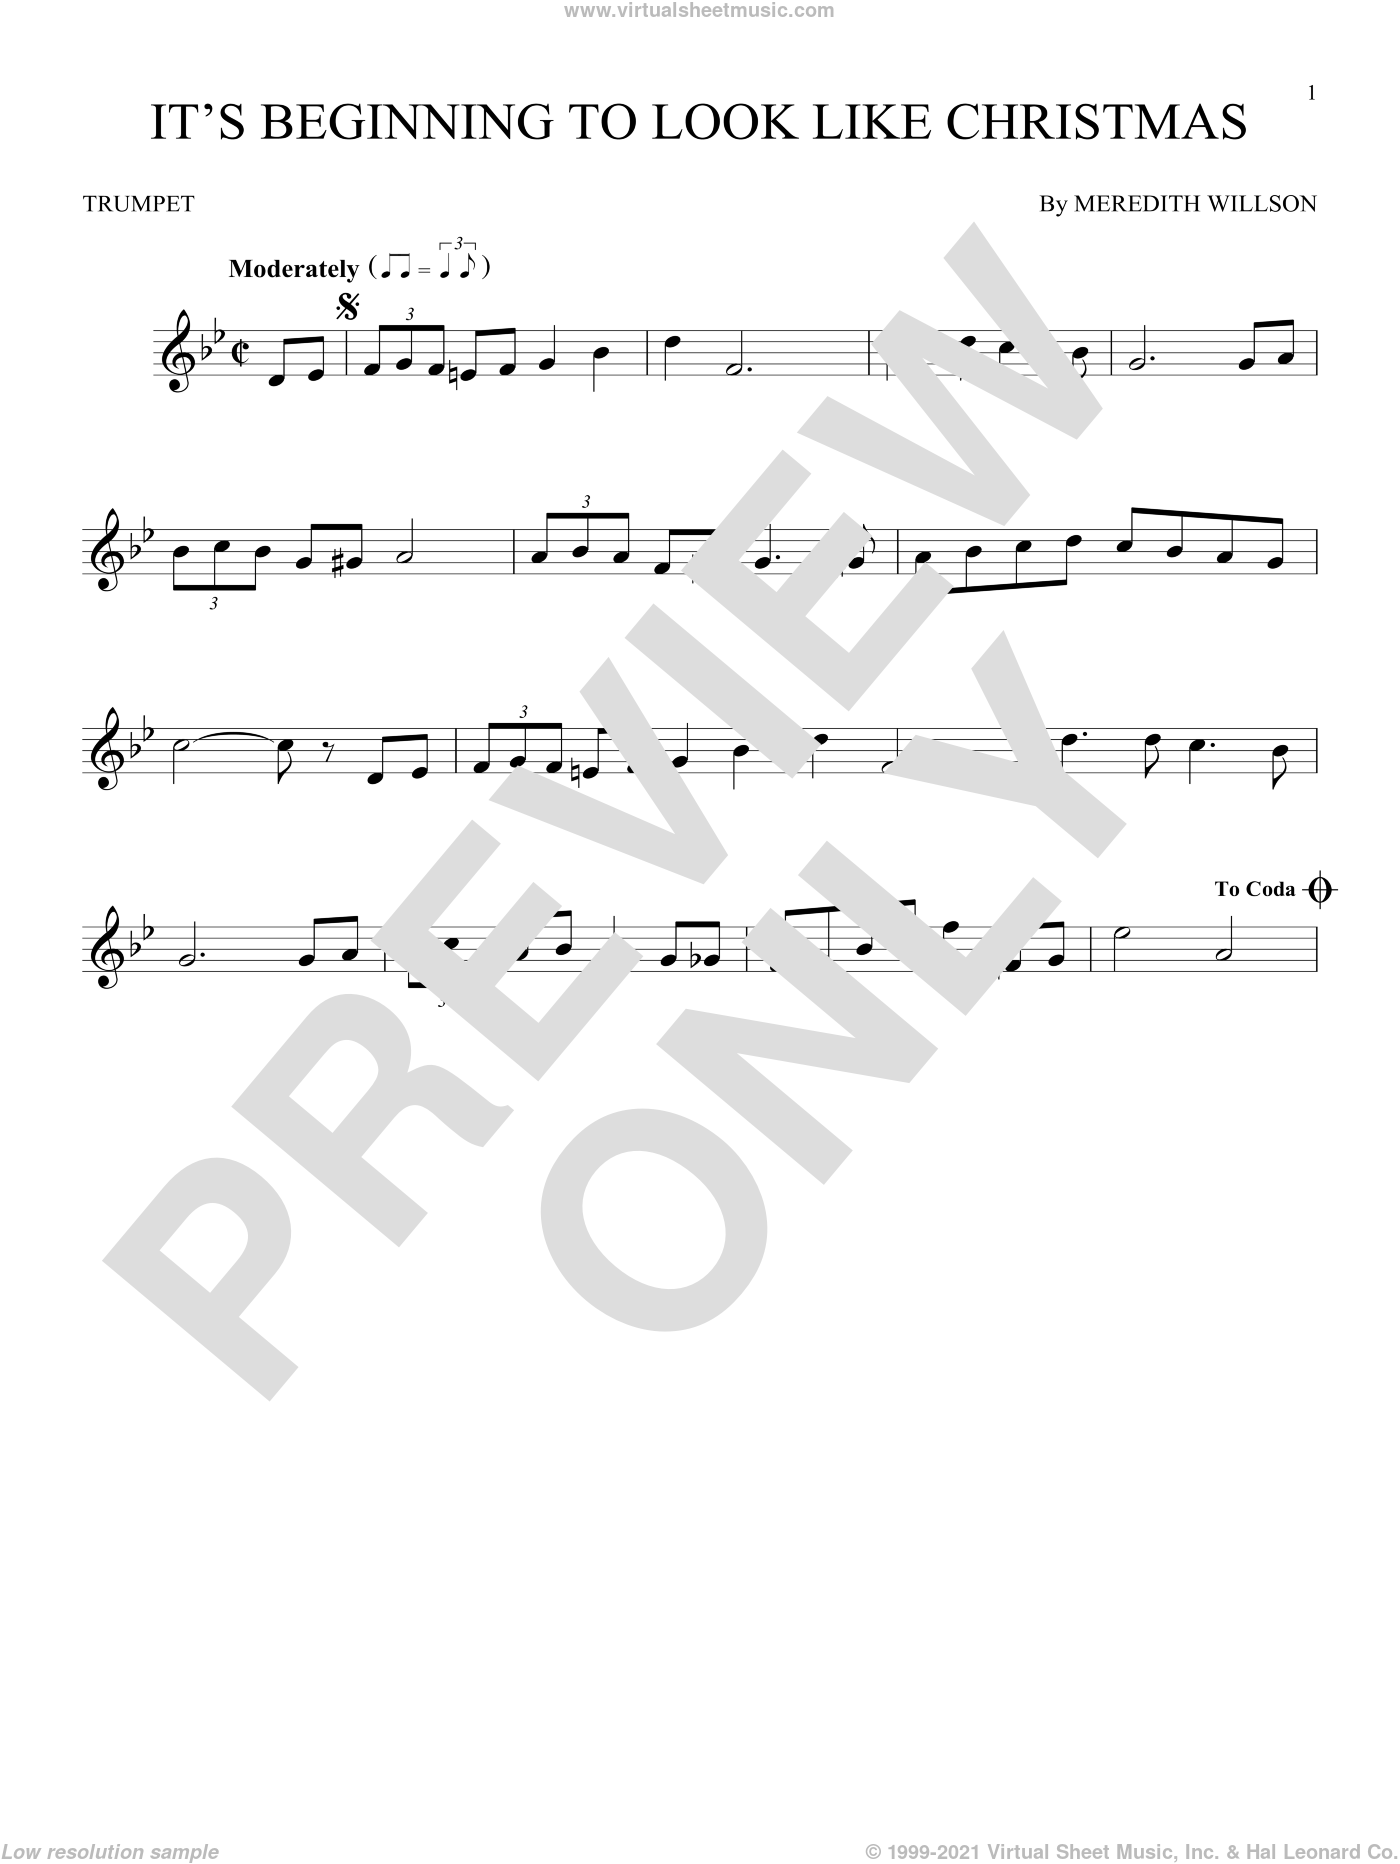 It's Beginning To Look Like Christmas sheet music for trumpet solo by Meredith Willson, intermediate skill level